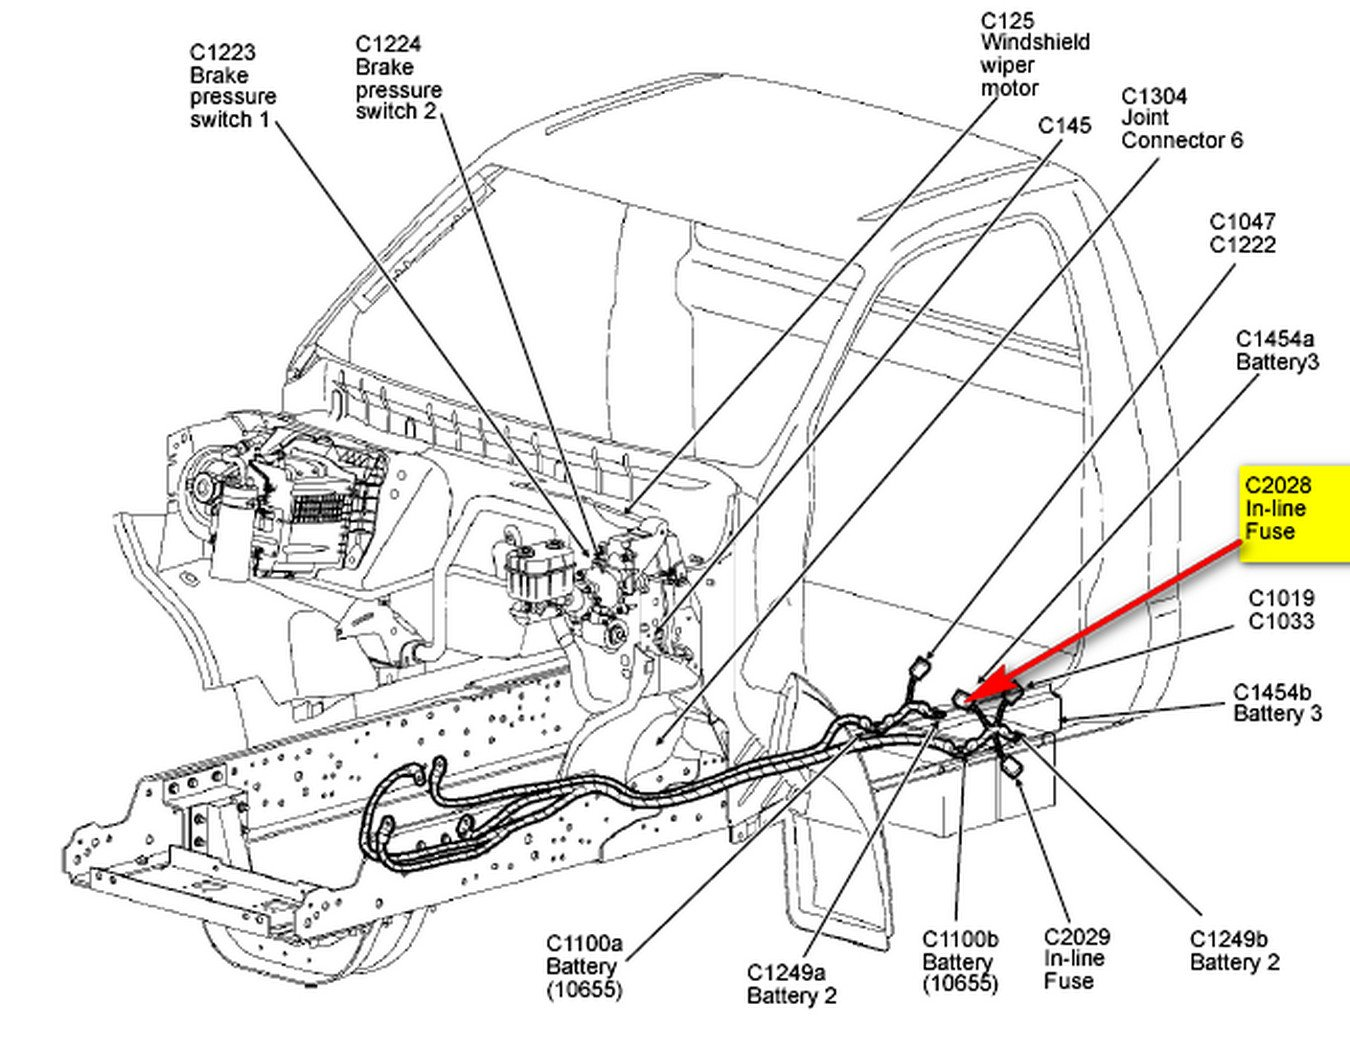 3206 cub cadet wiring diagram 3206 cat engine diagram wiring library  3206 cat engine diagram wiring library